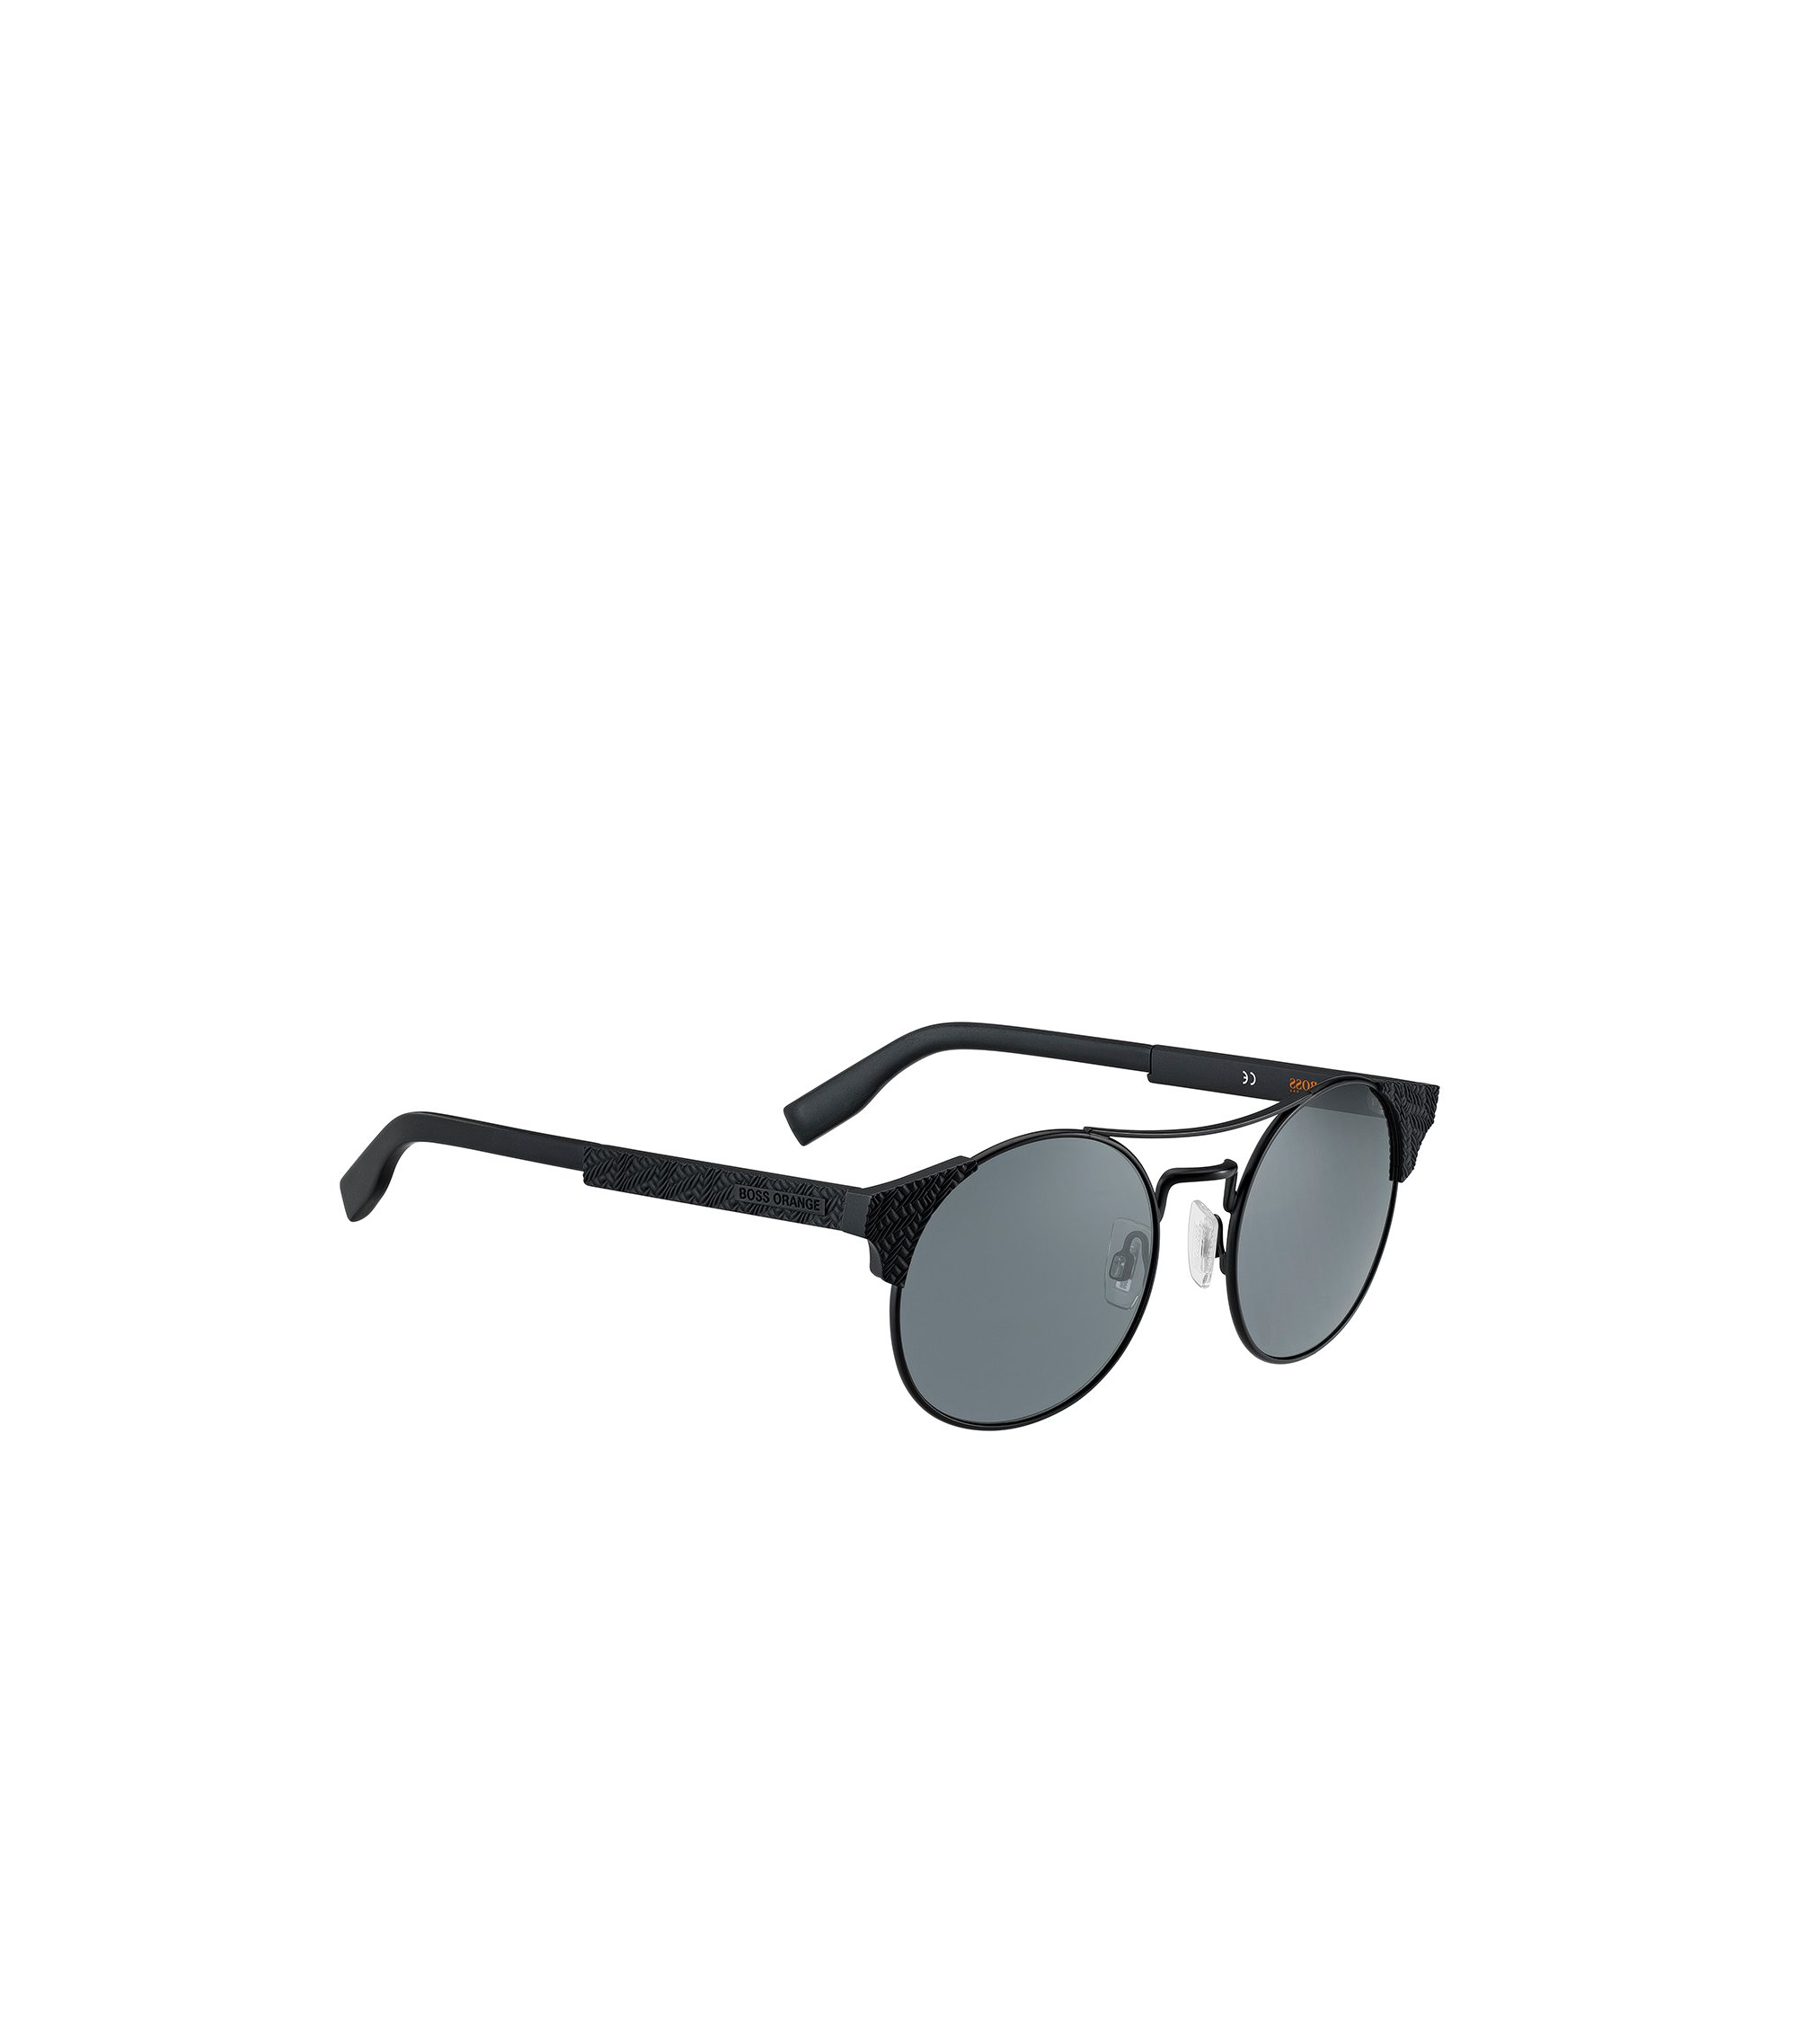 Black panto sunglasses with textured temples, Black